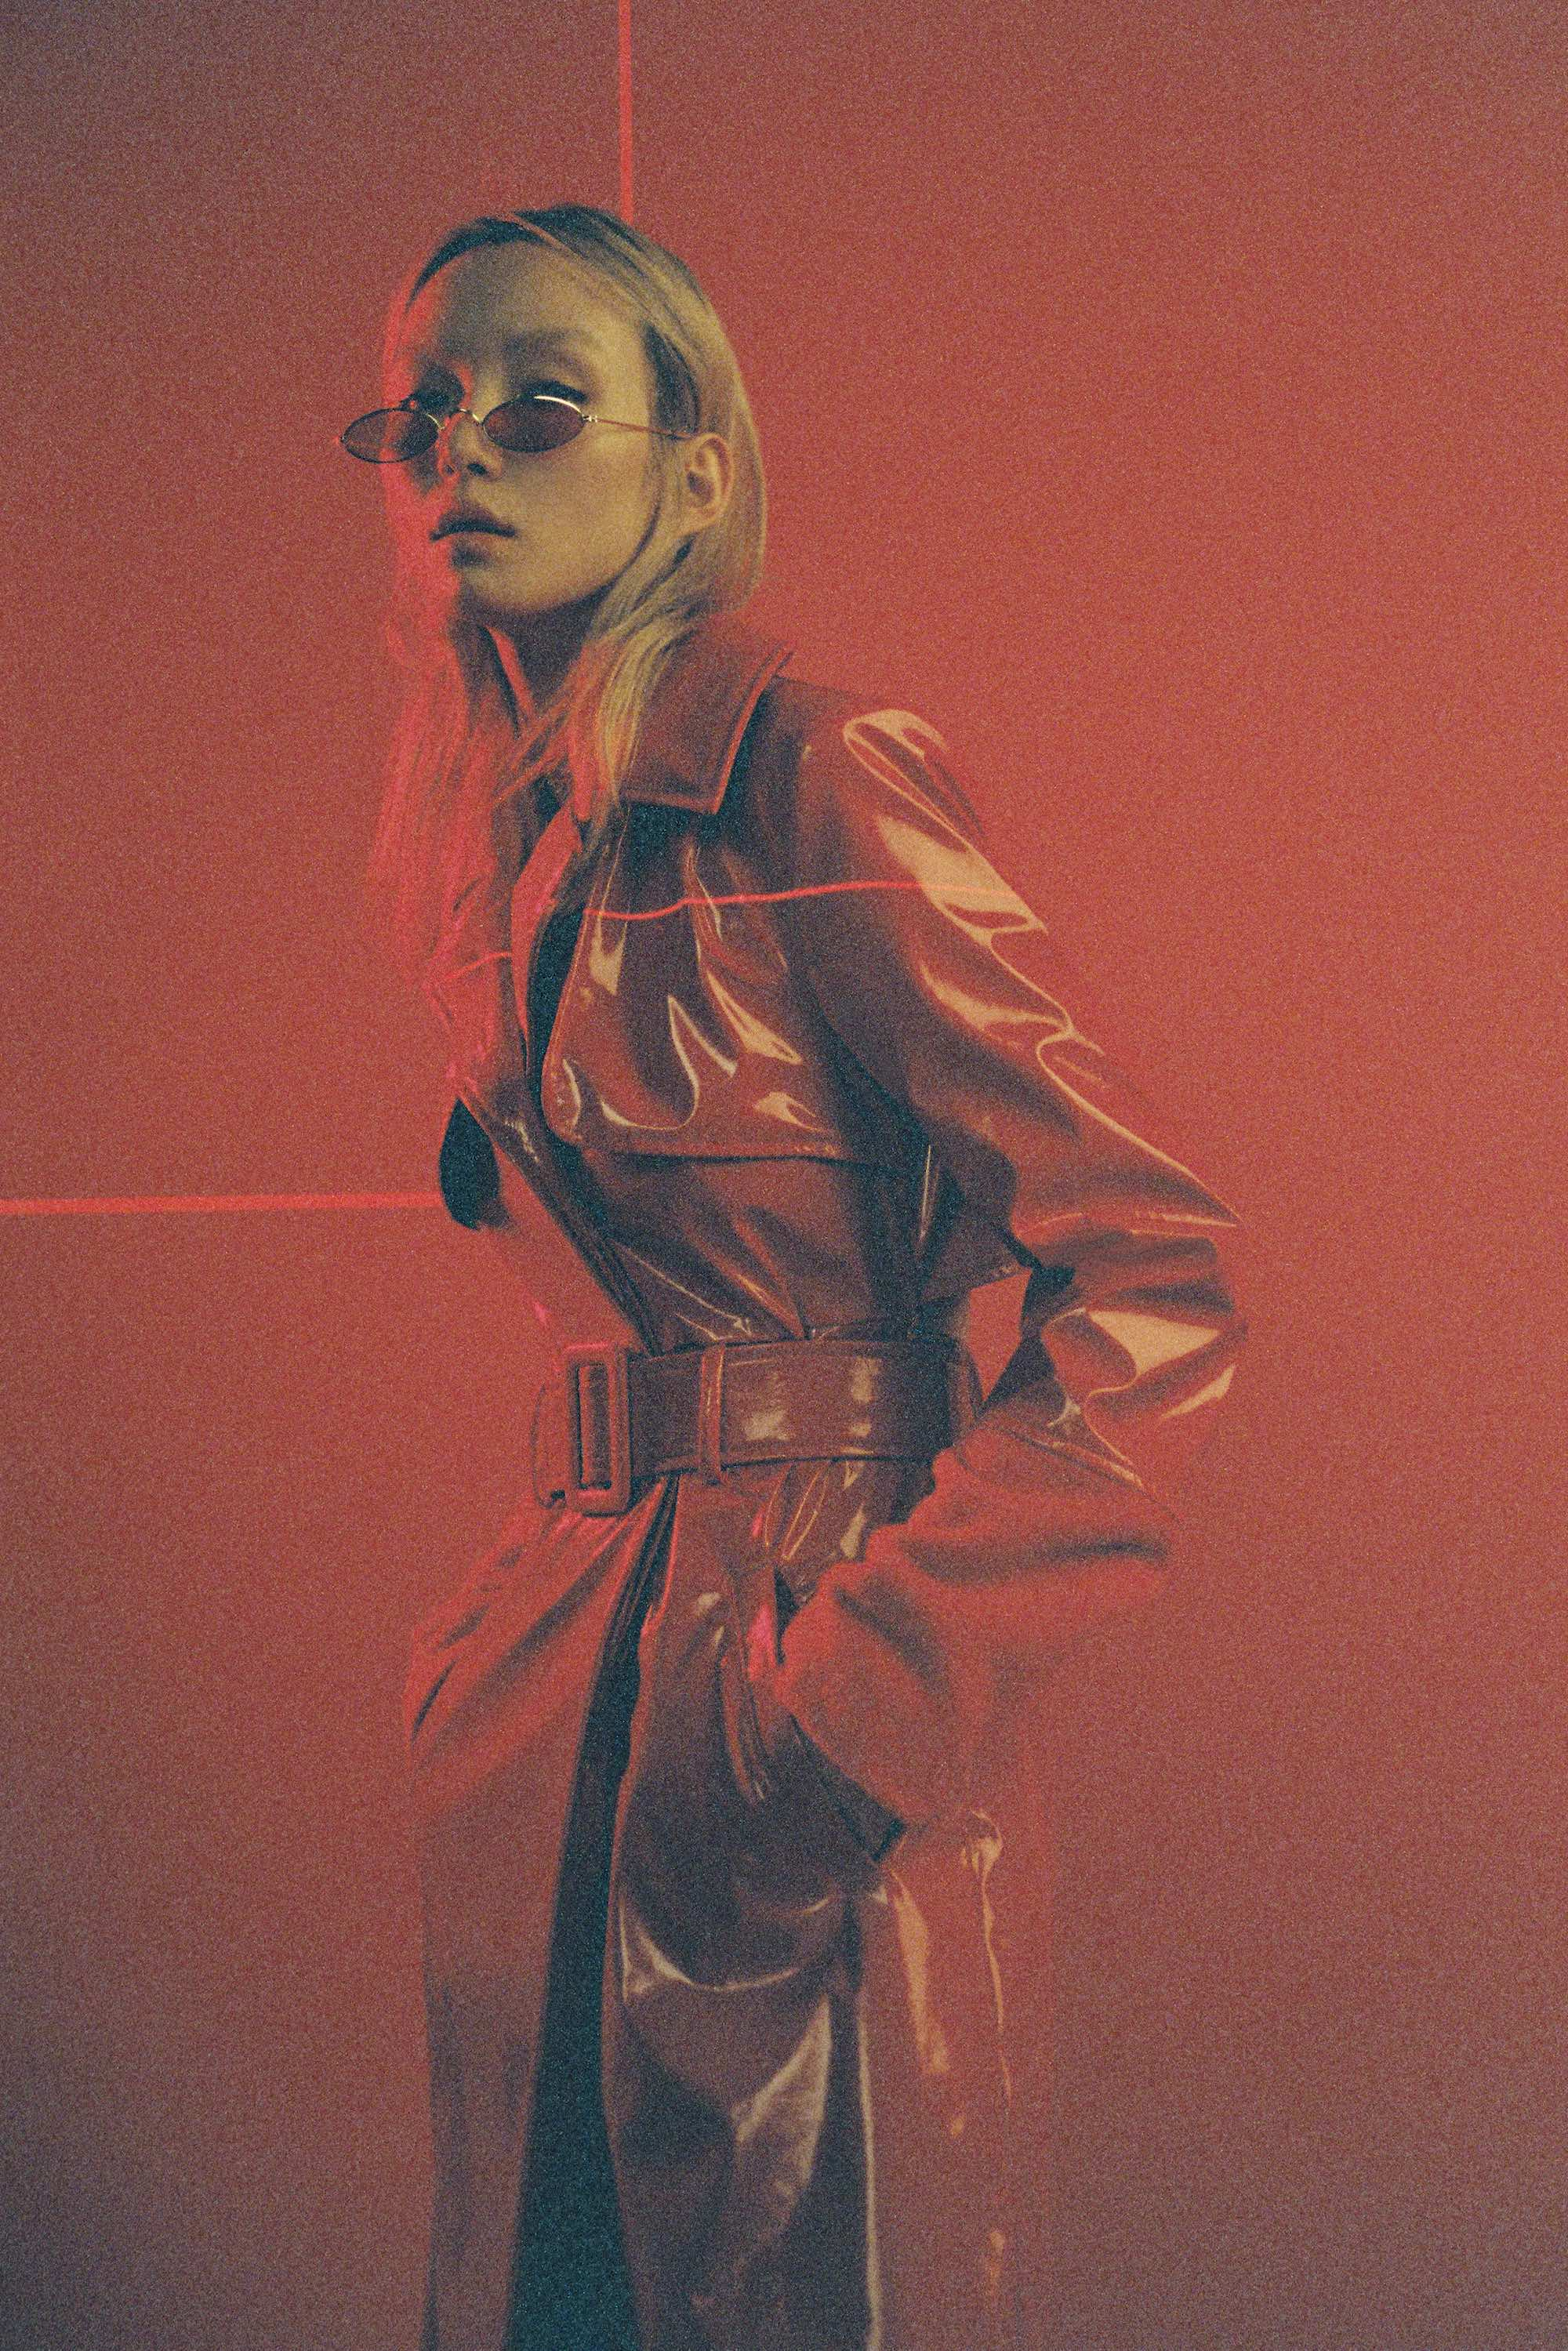 Peggy Gou's fashion line KIRIN red vinyl trench coat